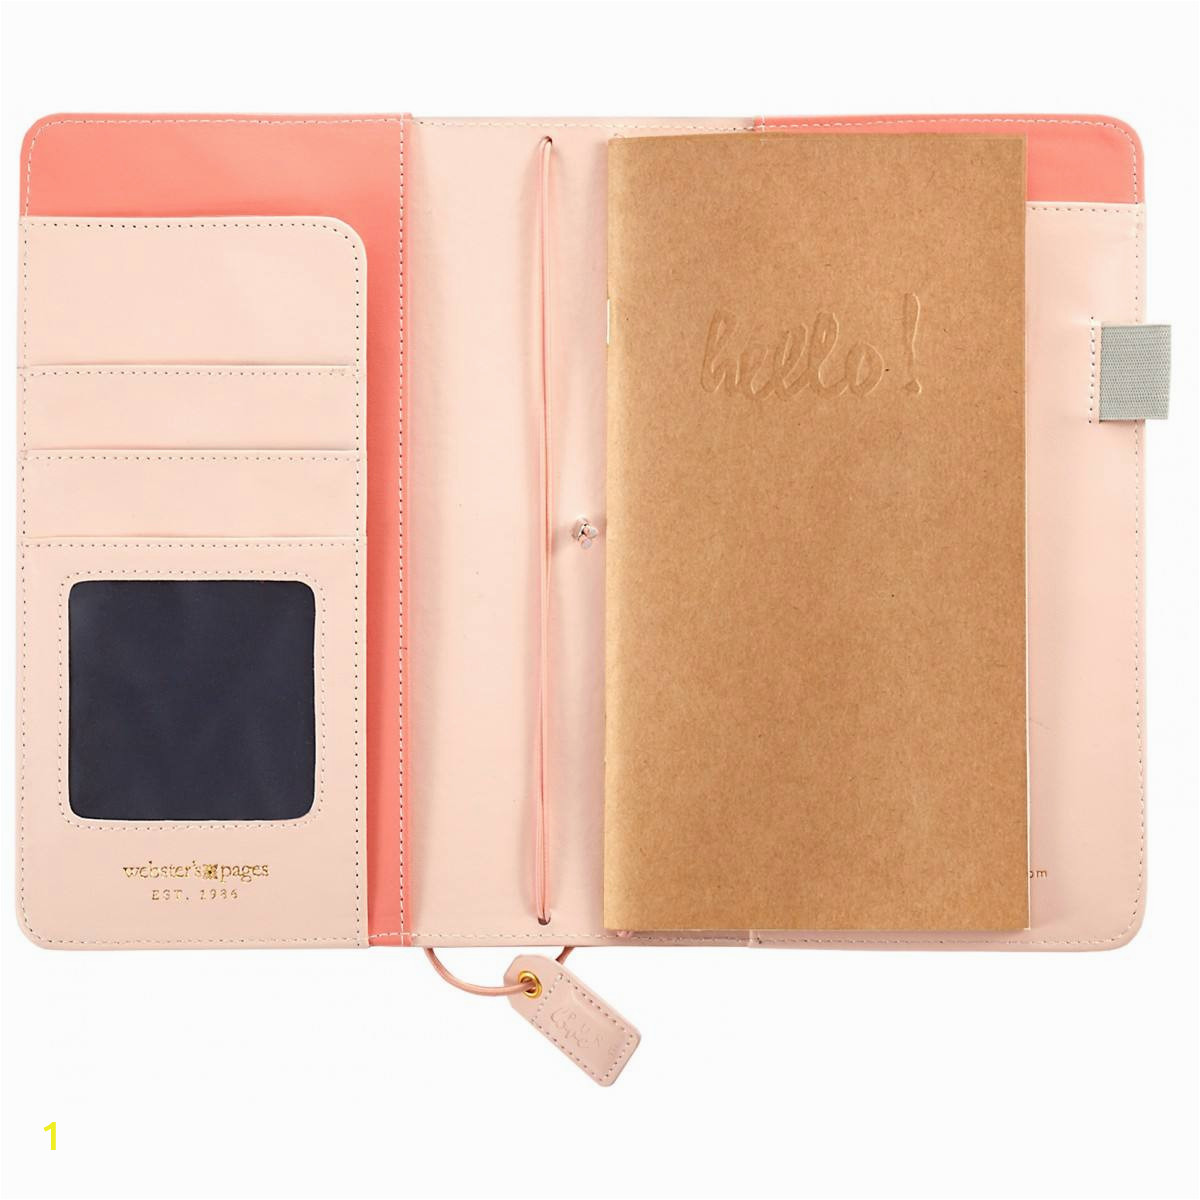 websters pages color crush travelers notebook planner blush pink 2651